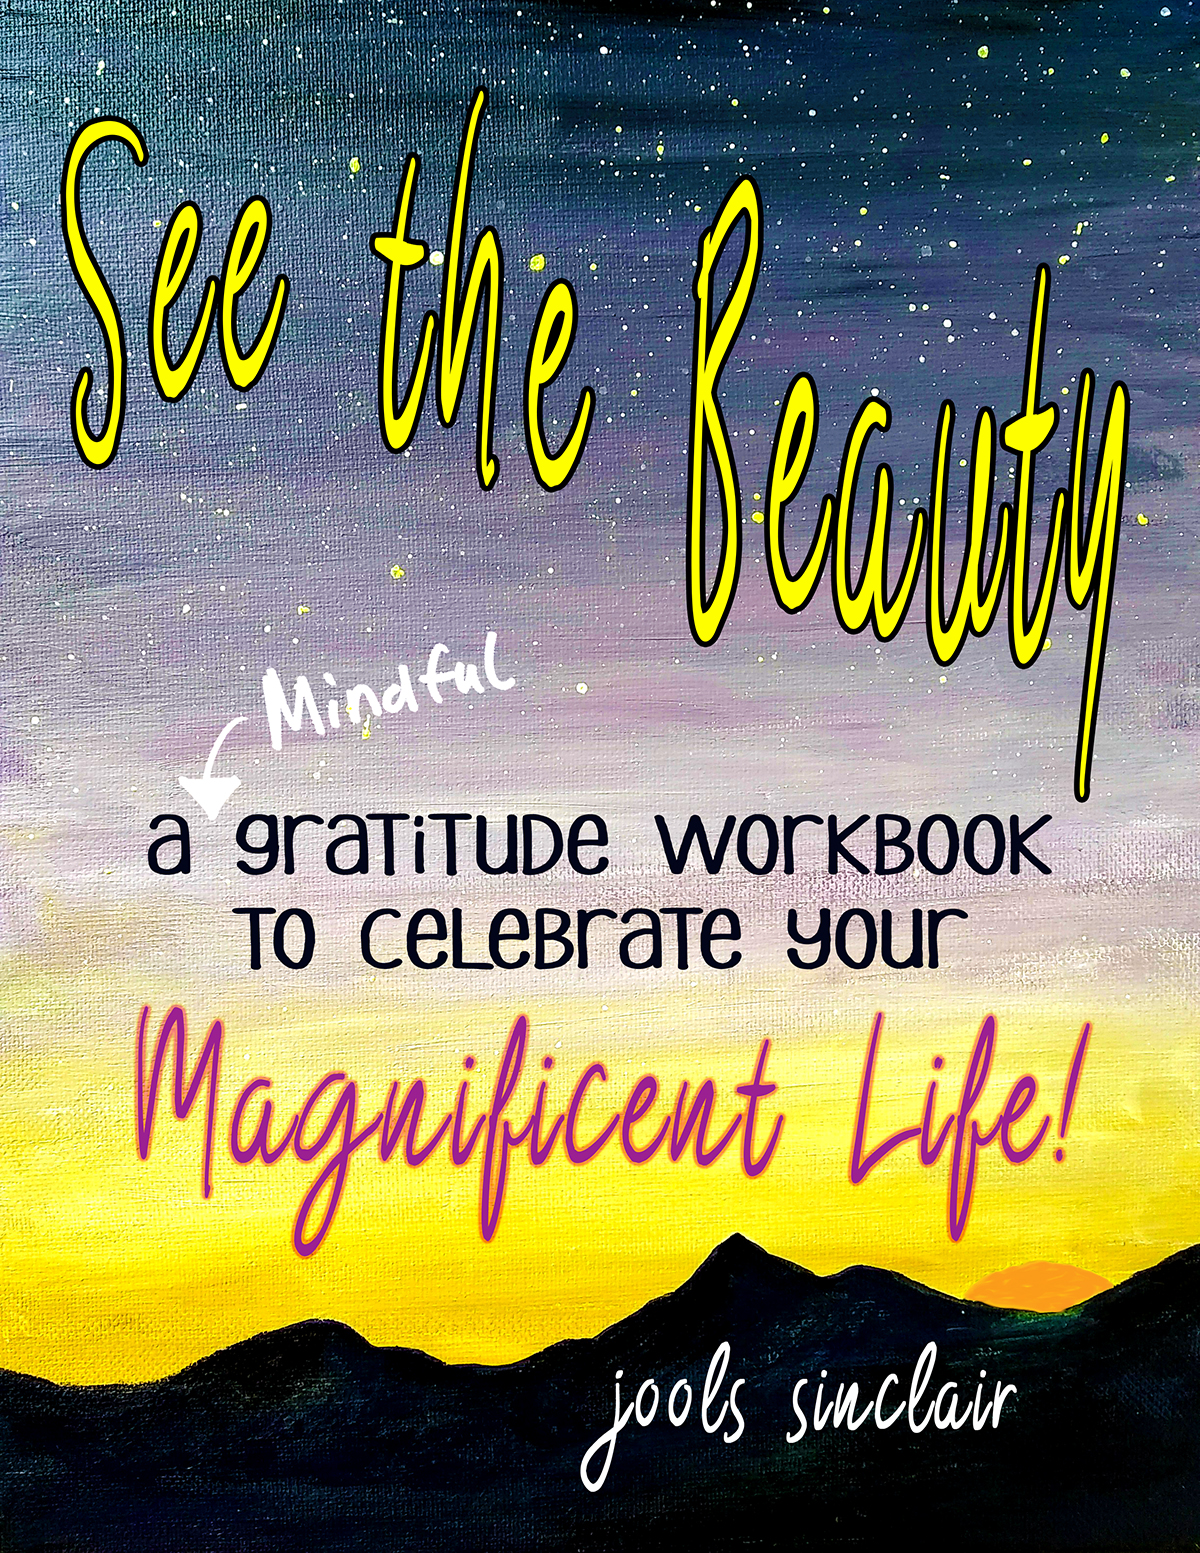 Available here…  SEE THE BEAUTY: A Mindful Gratitude Workbook to Celebrate Your Magnificent Life